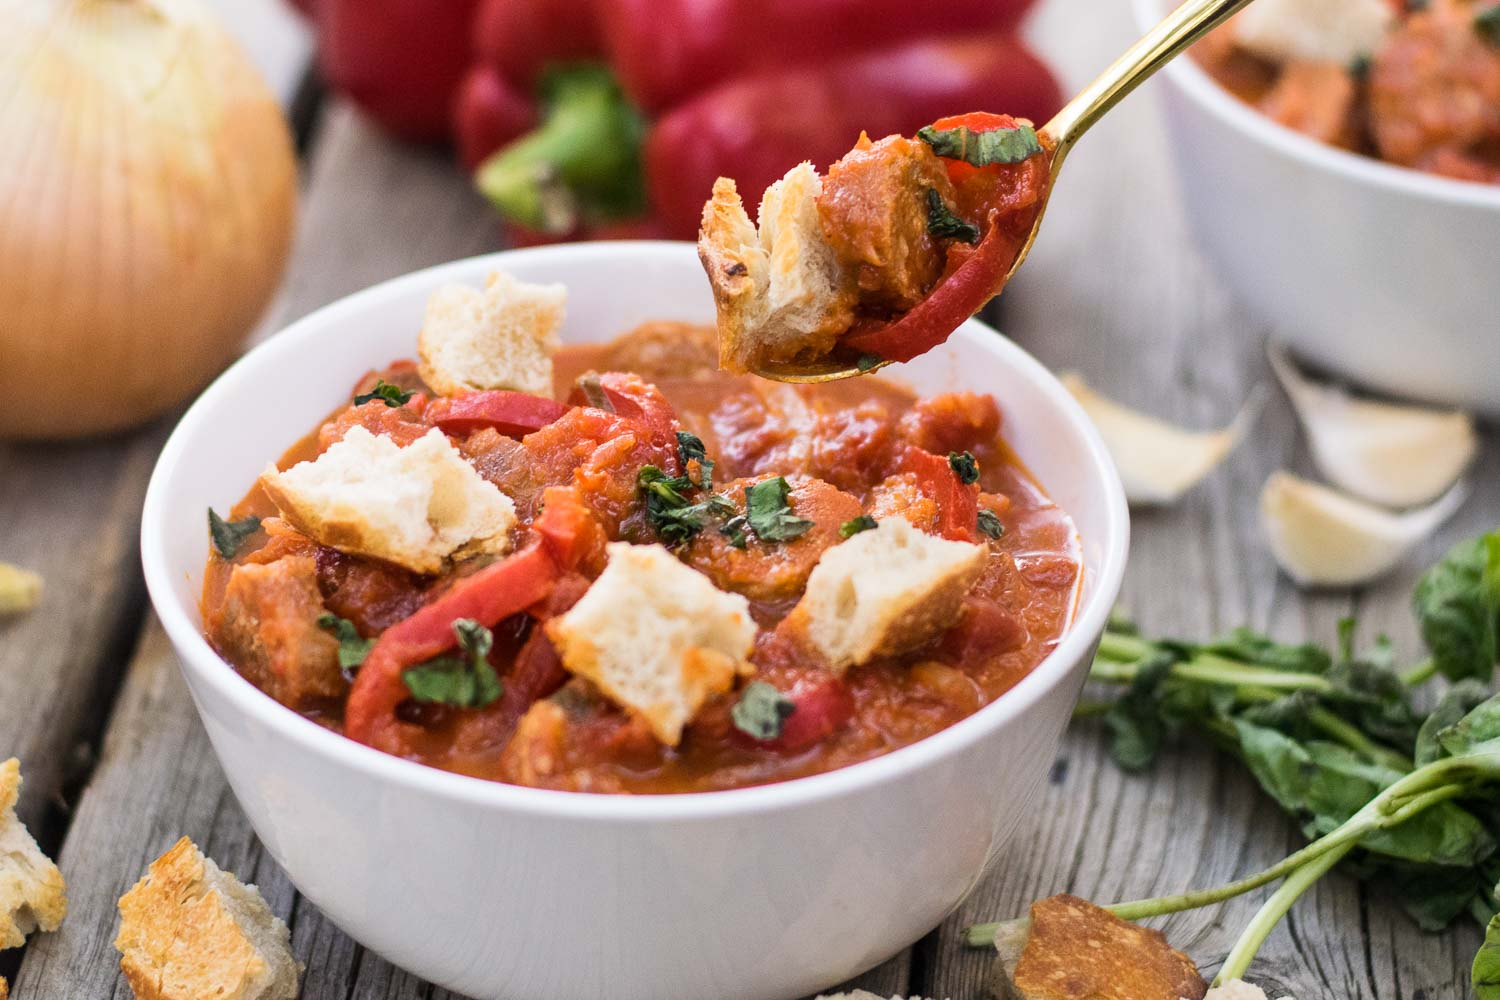 Embrace the cozy flavors of fall with a rustic stew of roasted red peppers, fresh basil, & sausage! Equally perfect for forest campsites & home kitchens.